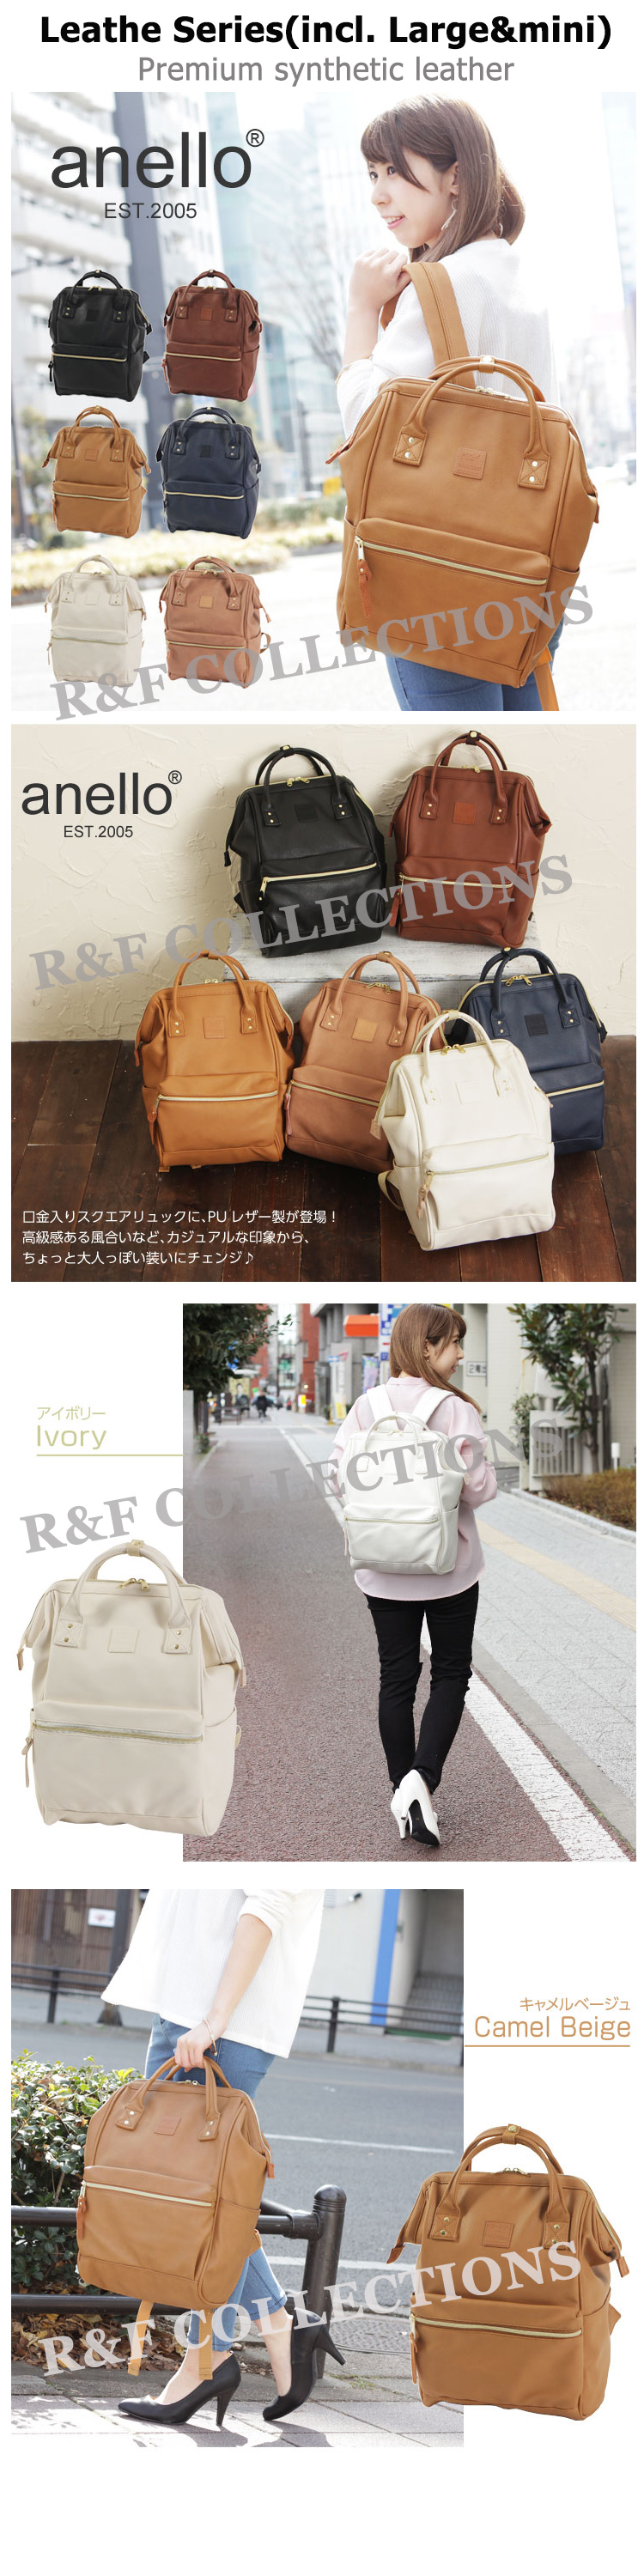 ... take note that some inferior material leather version anello backpack  is selling with quite lower price in Qoo10 SG b6c4ba09c2eb2